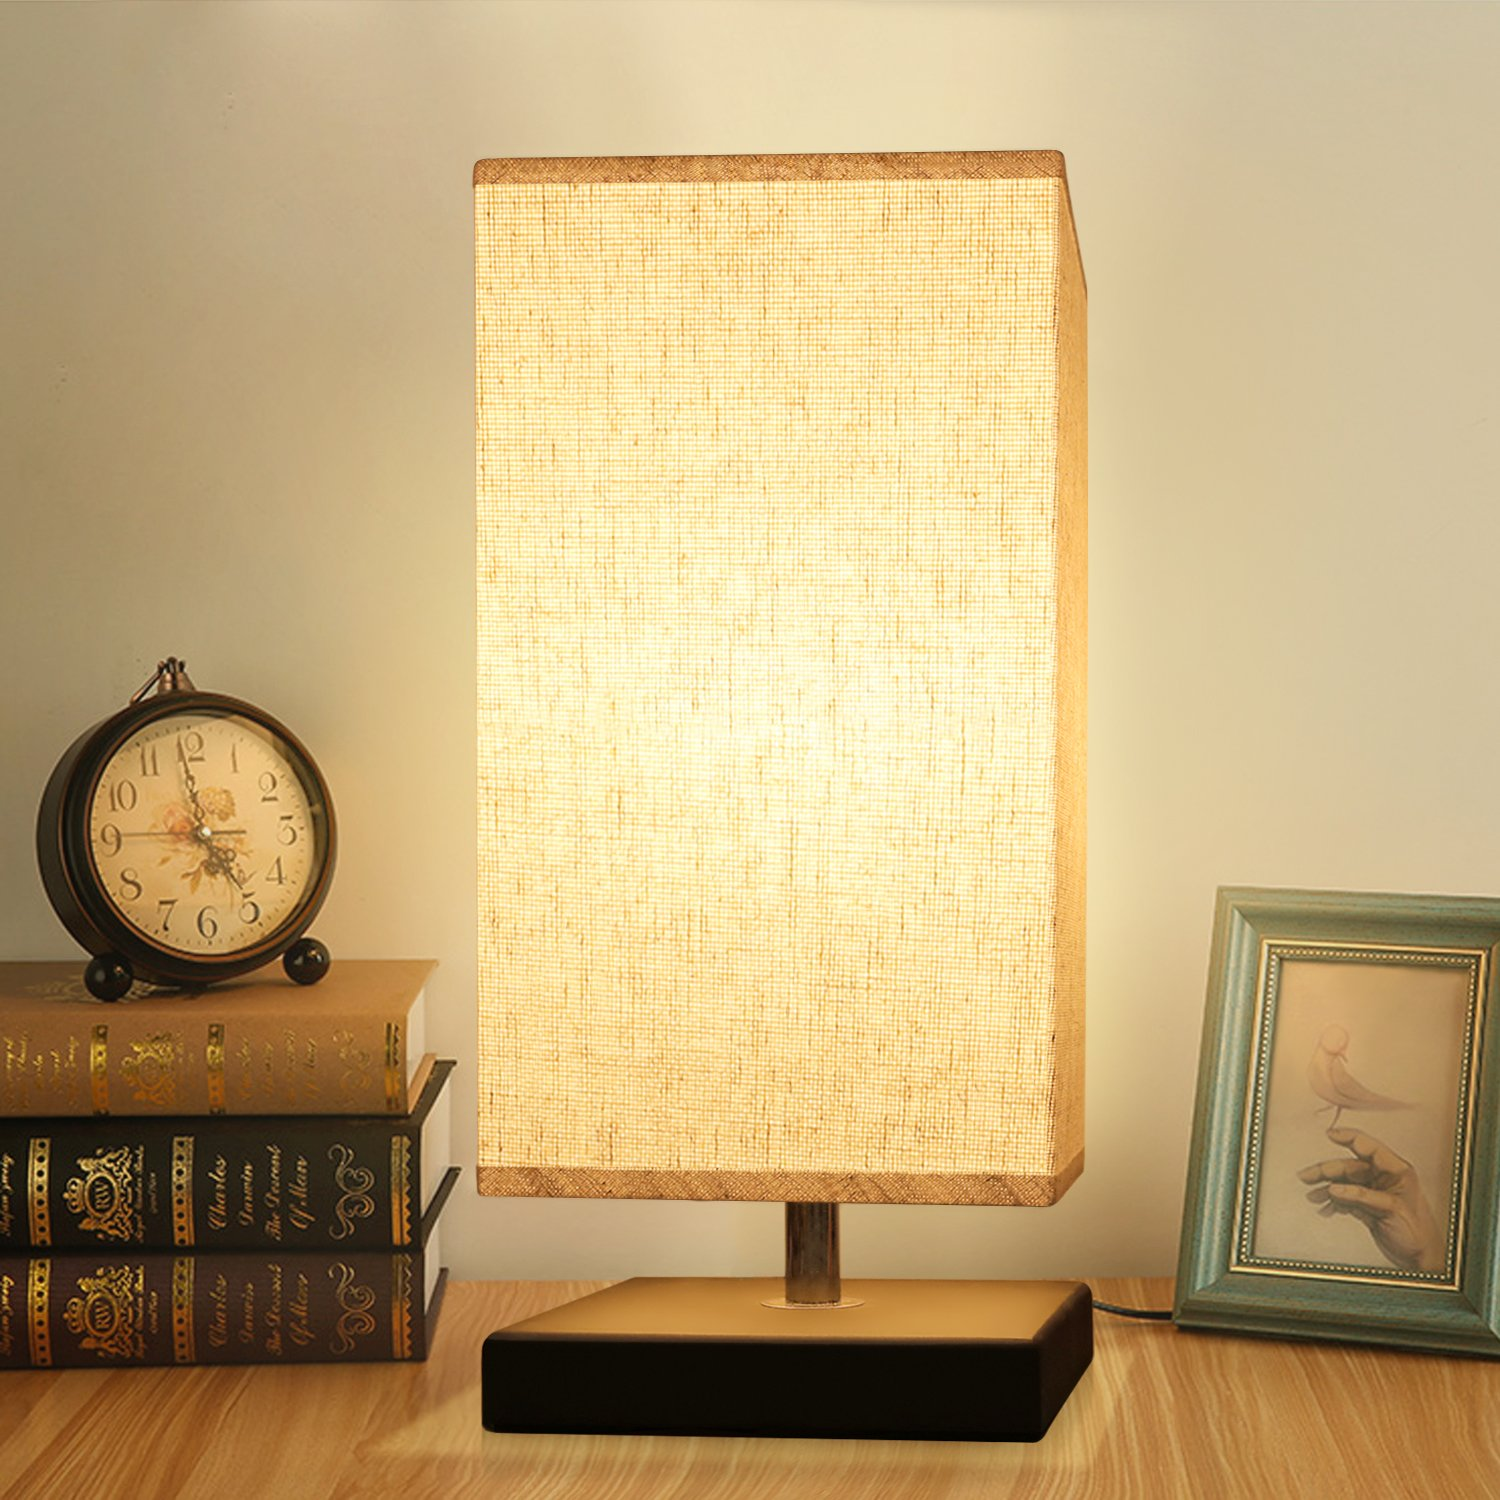 Bedside Lamp Table Desk Lamp,Acaxin Bed Lamps for Nightstand Bedroom Living Room